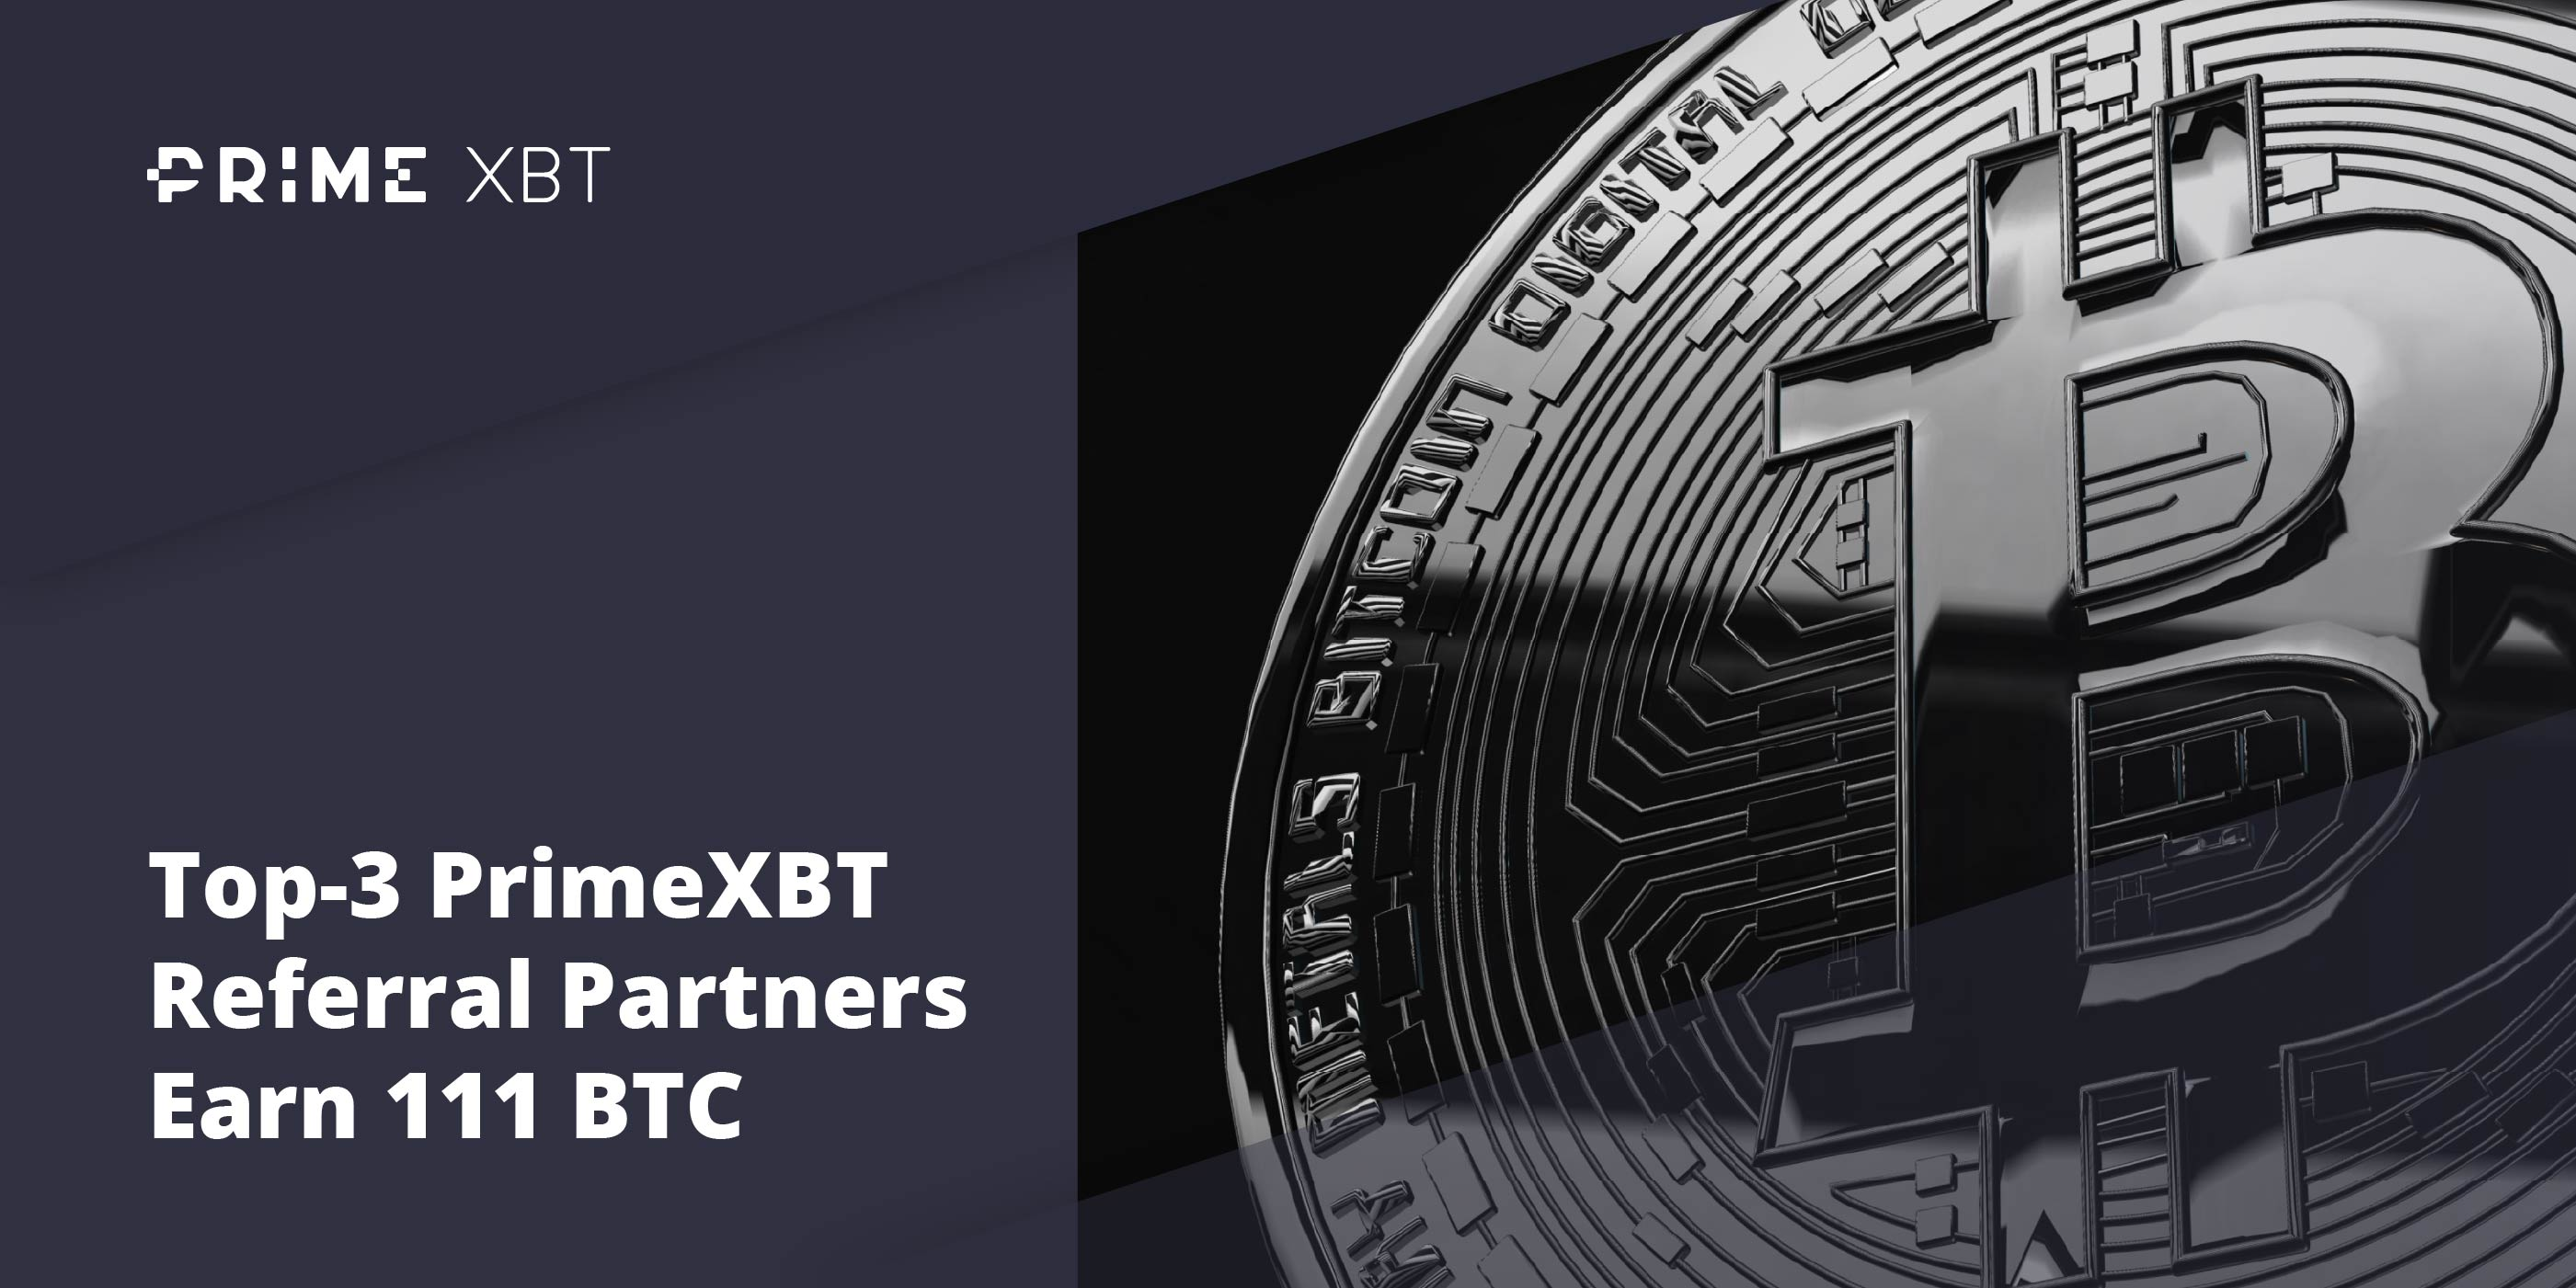 Top-3 PrimeXBT Referral Partners Earn 111 BTC